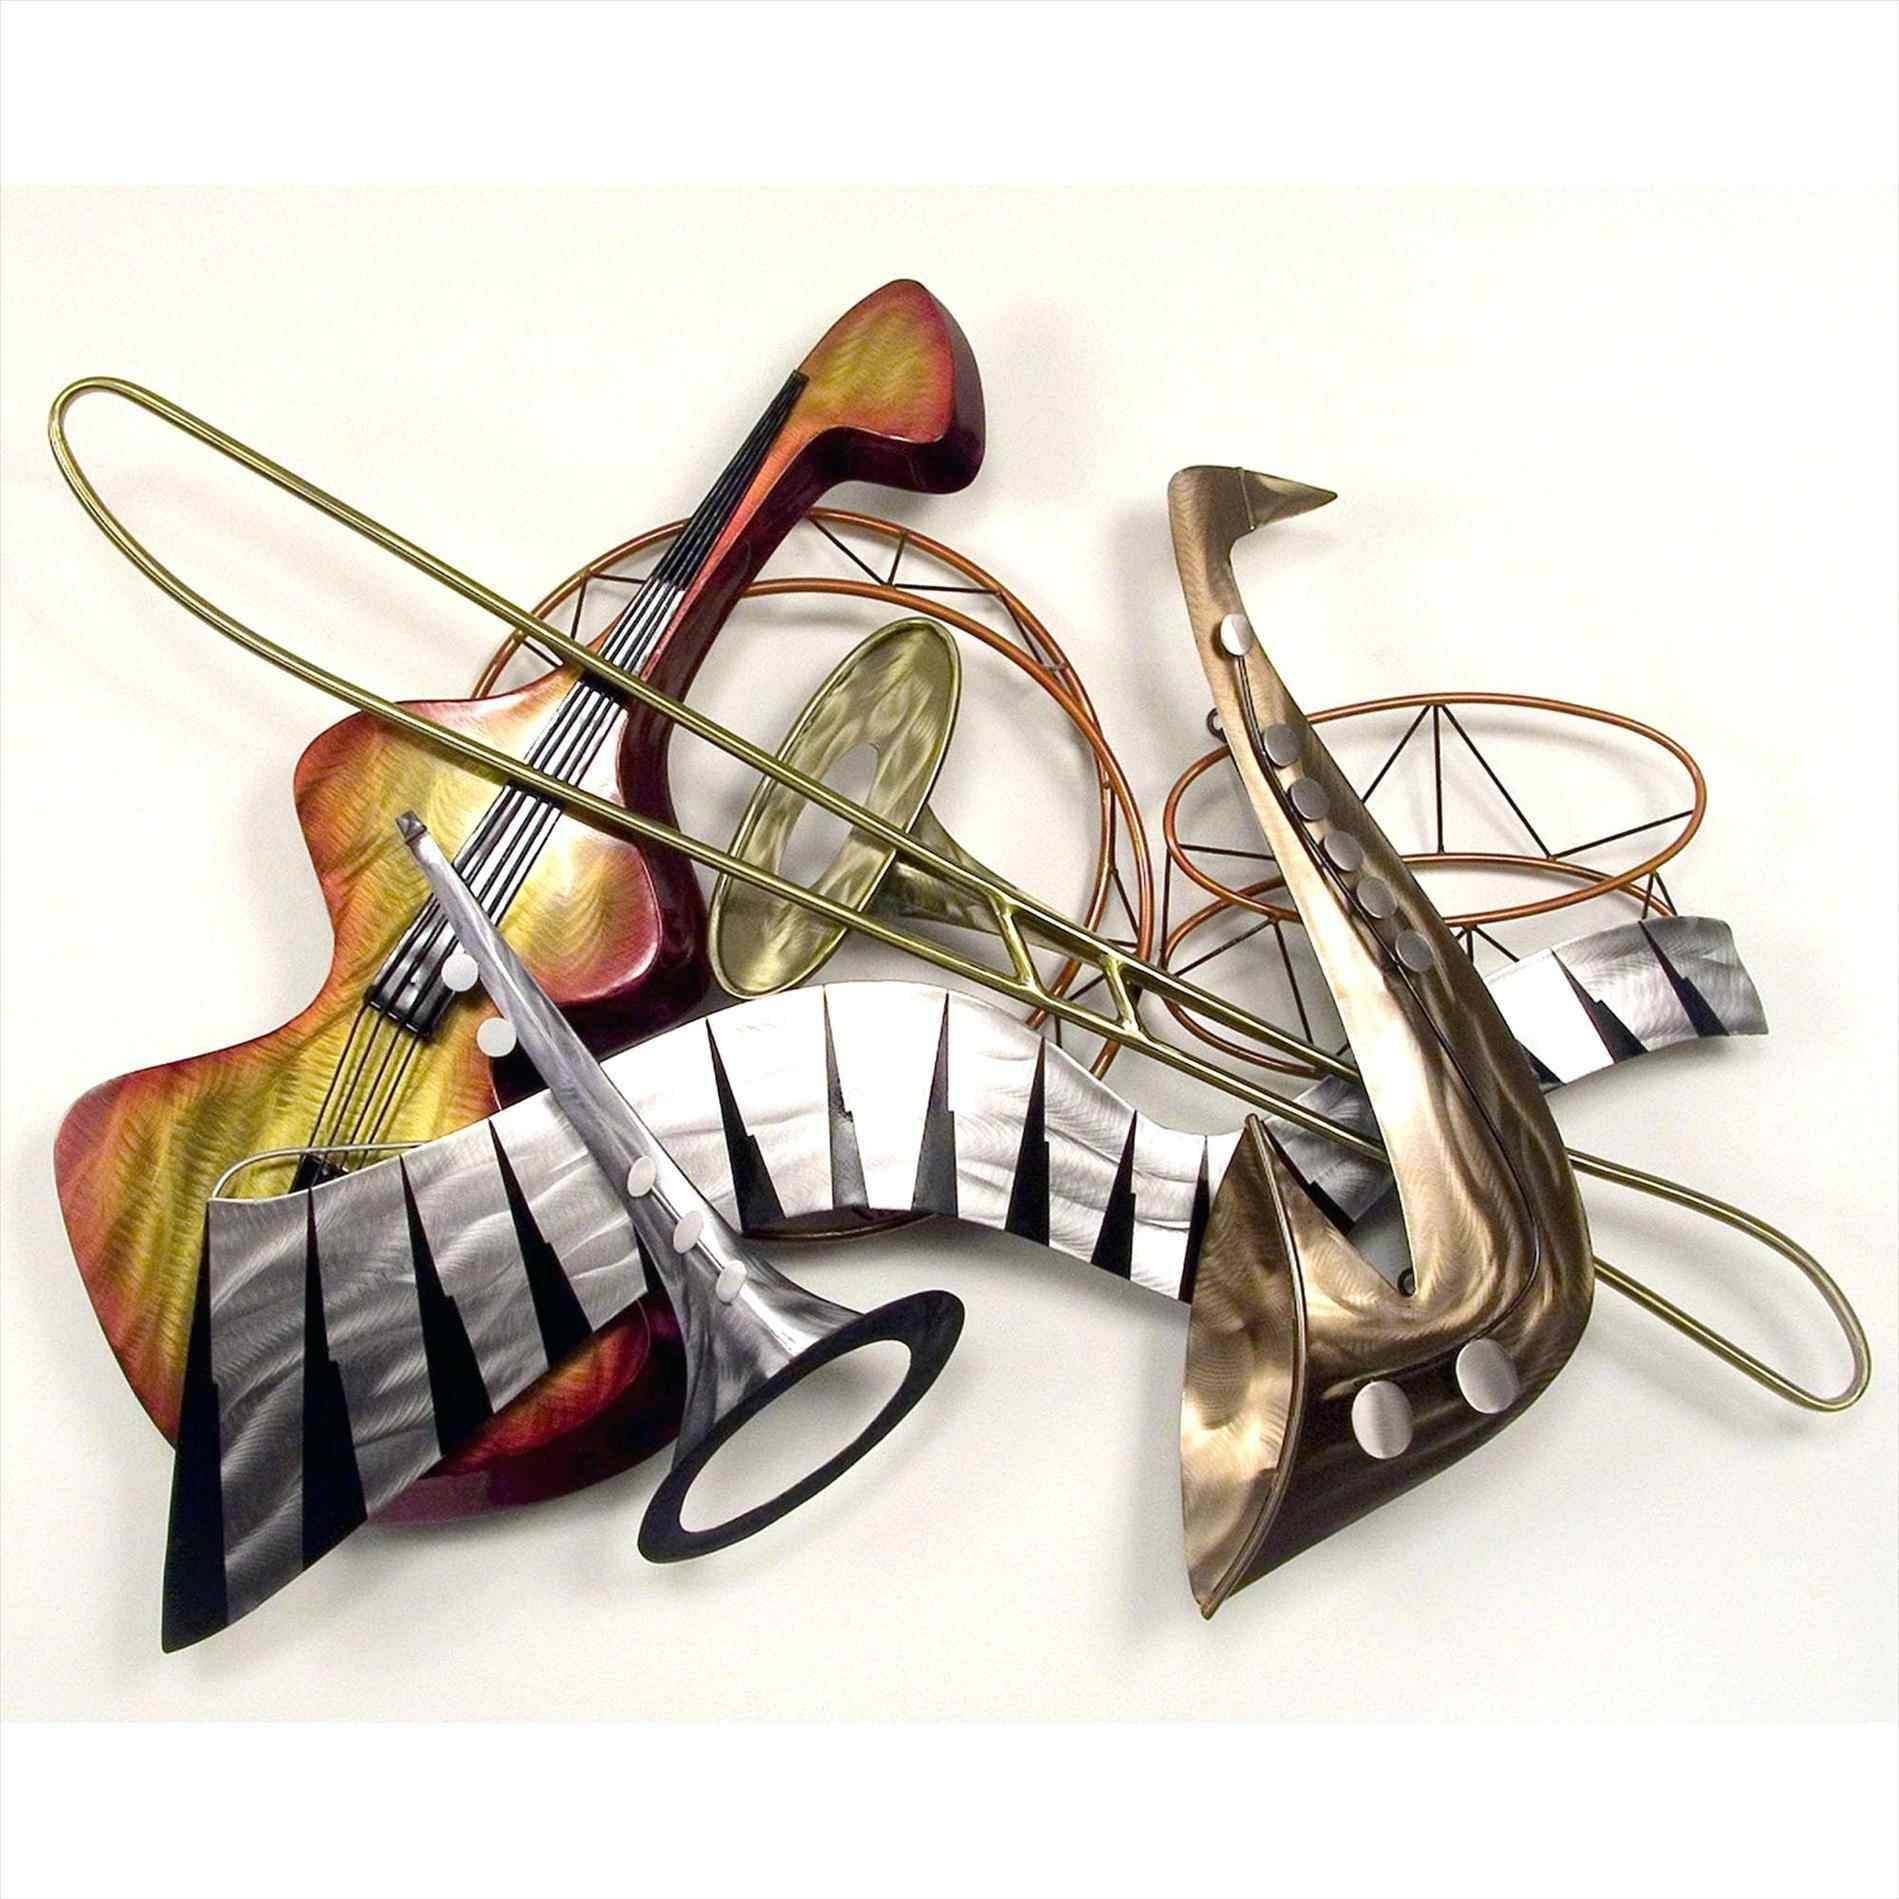 Metal Music Notes Wall Art | Home Interior Decor With Most Current Musical Metal Wall Art (View 17 of 20)